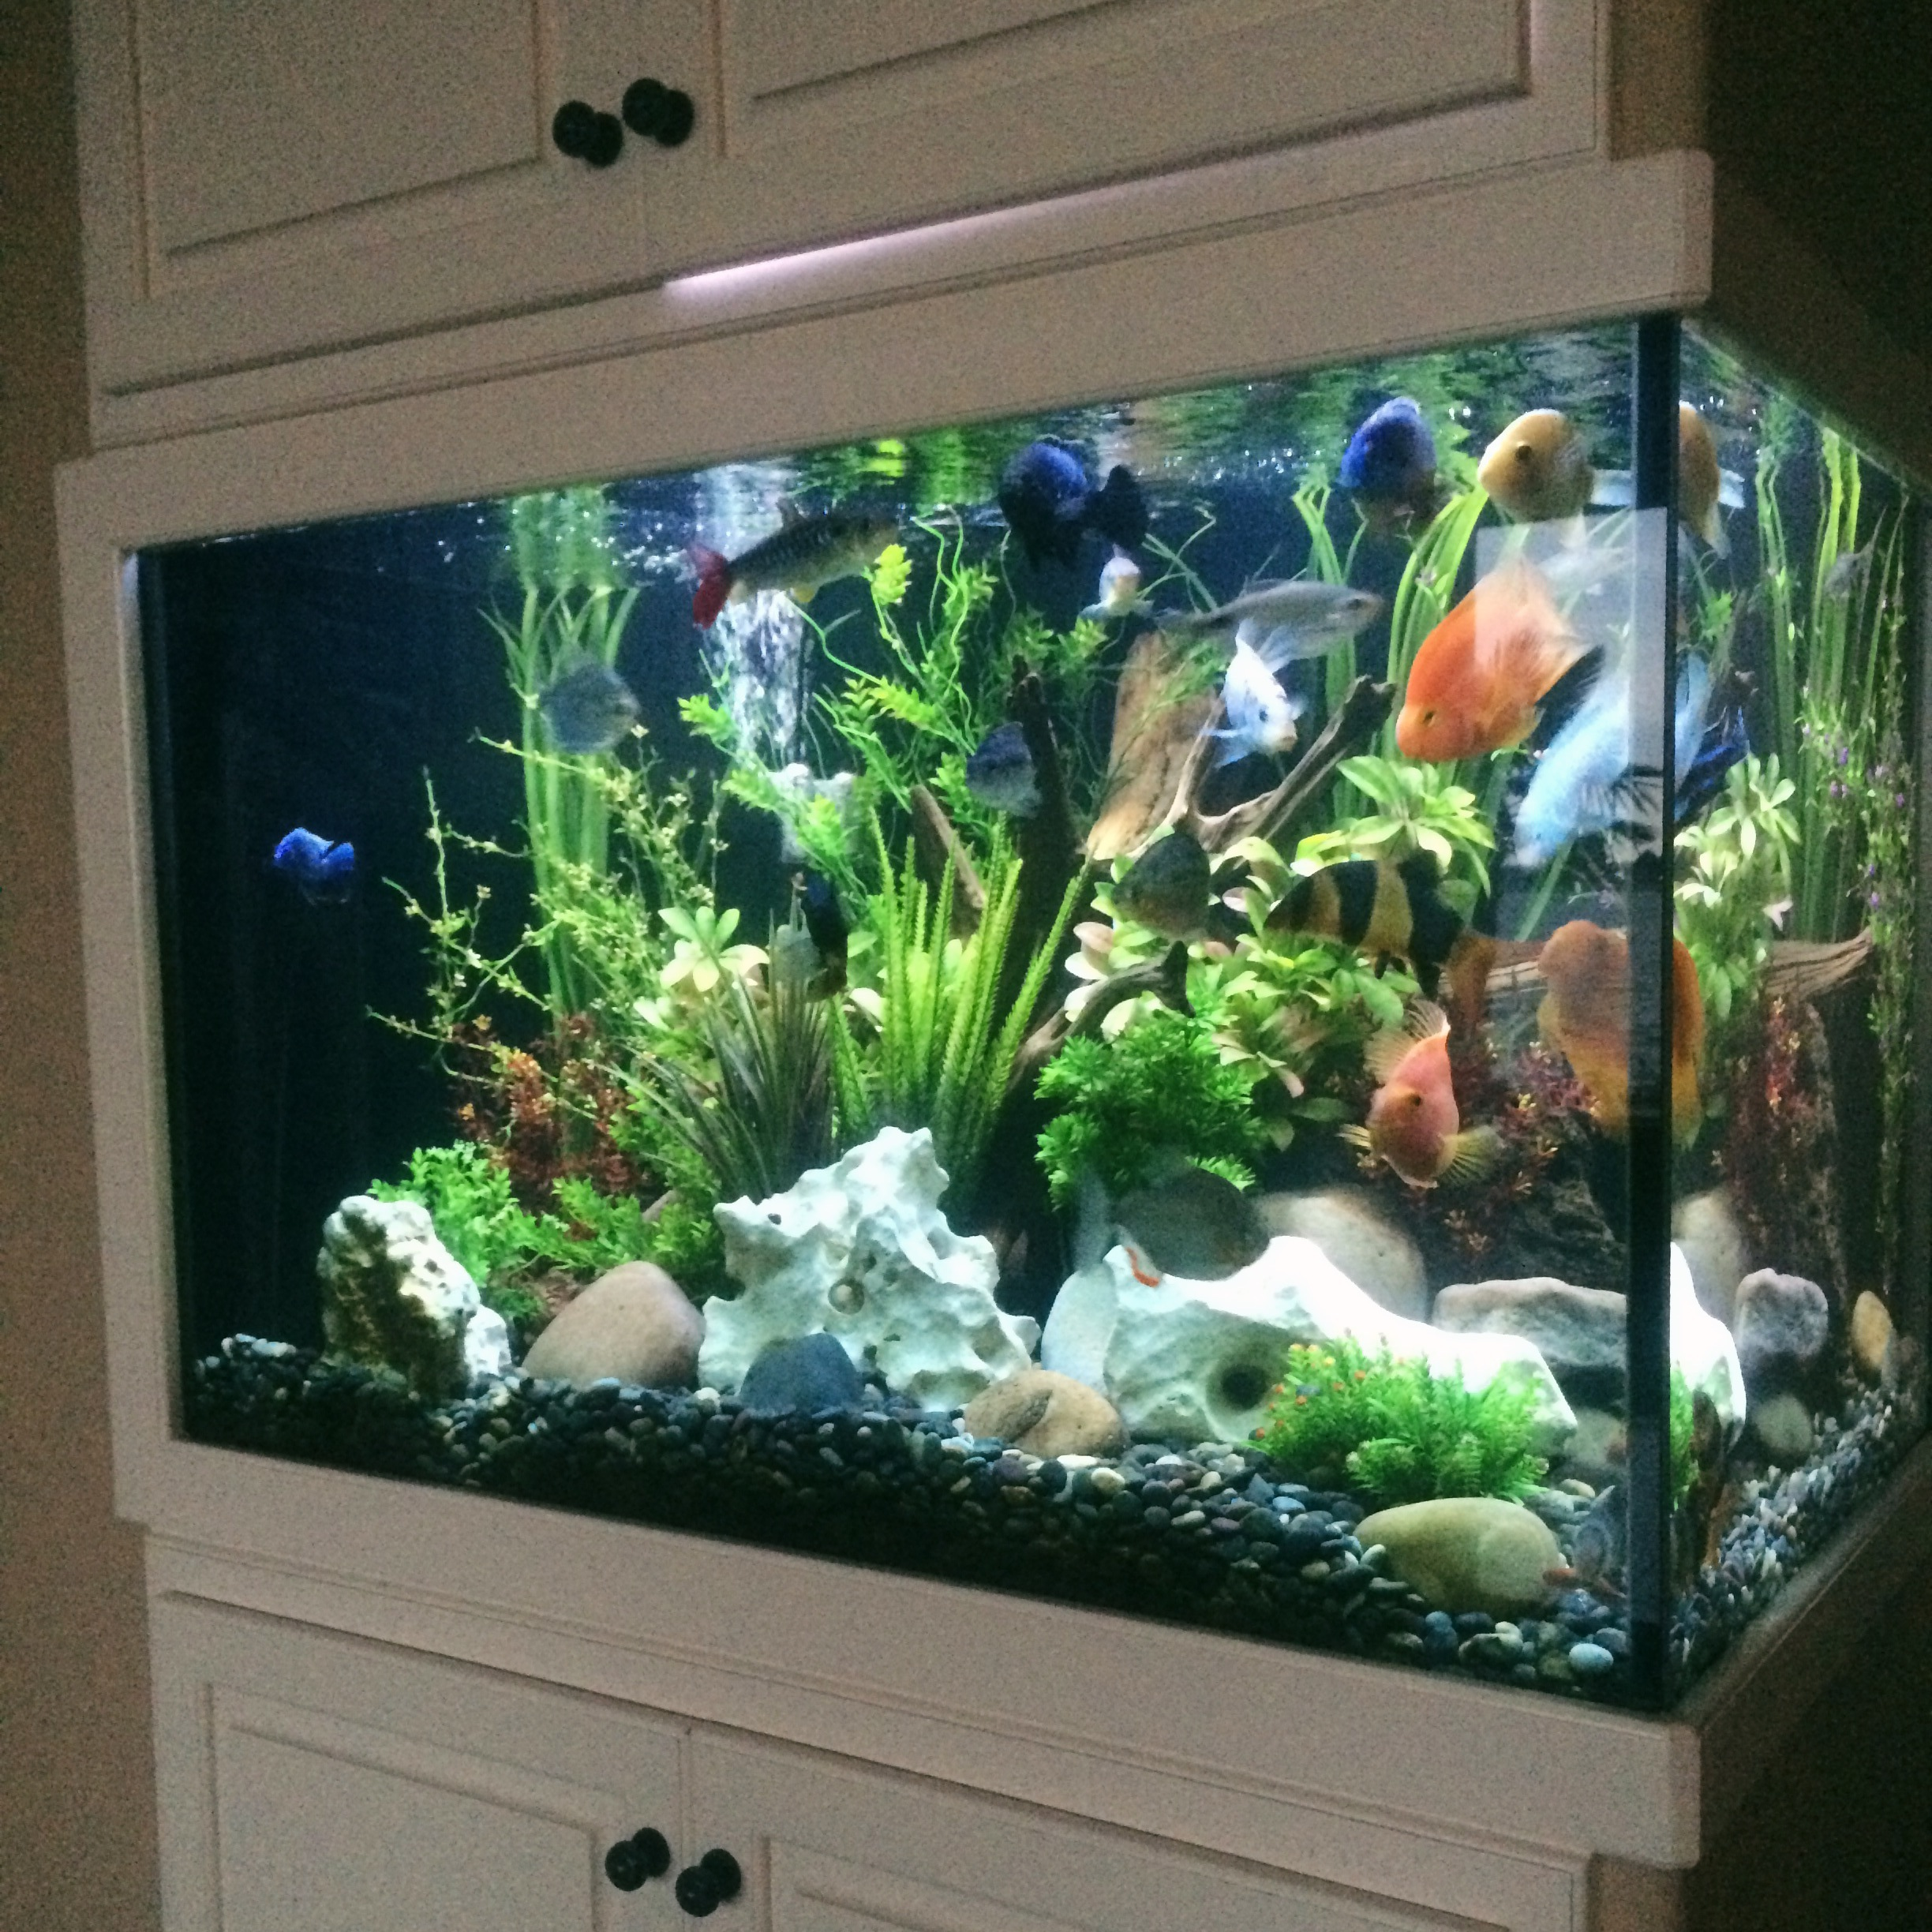 Built-In Fish Tank